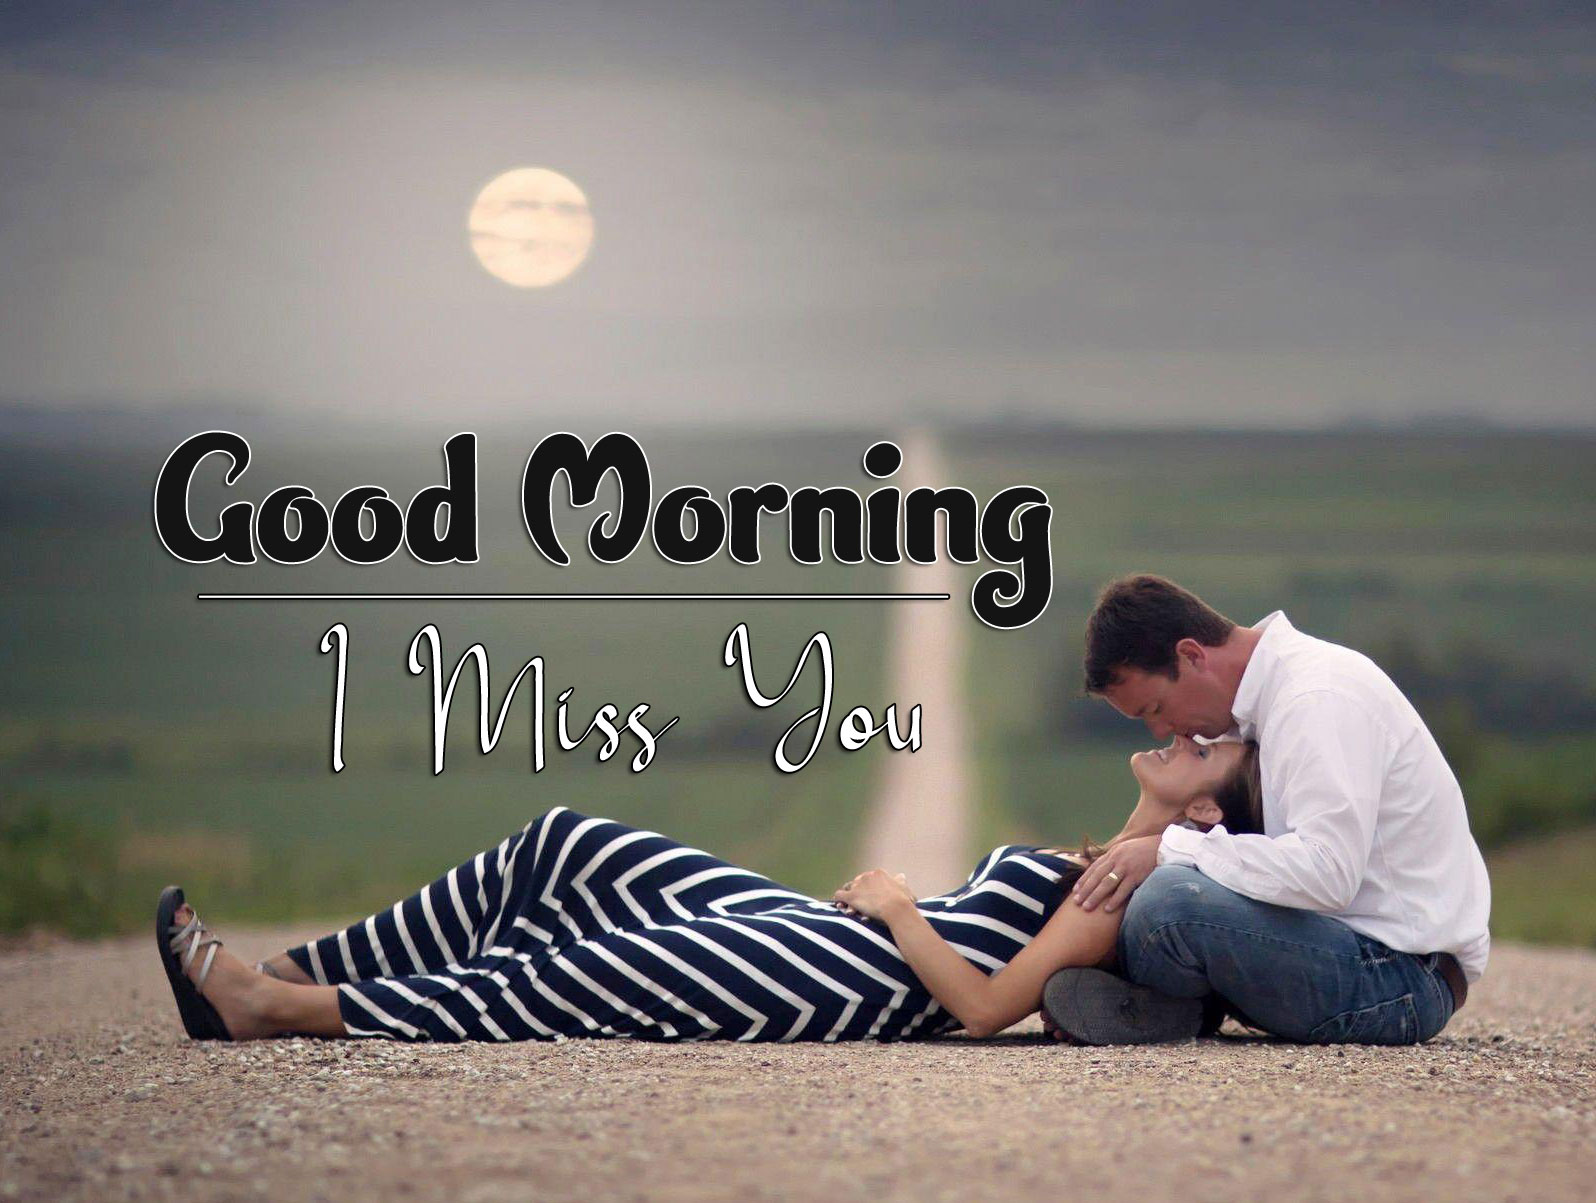 beautiful couple good morning images pics for download